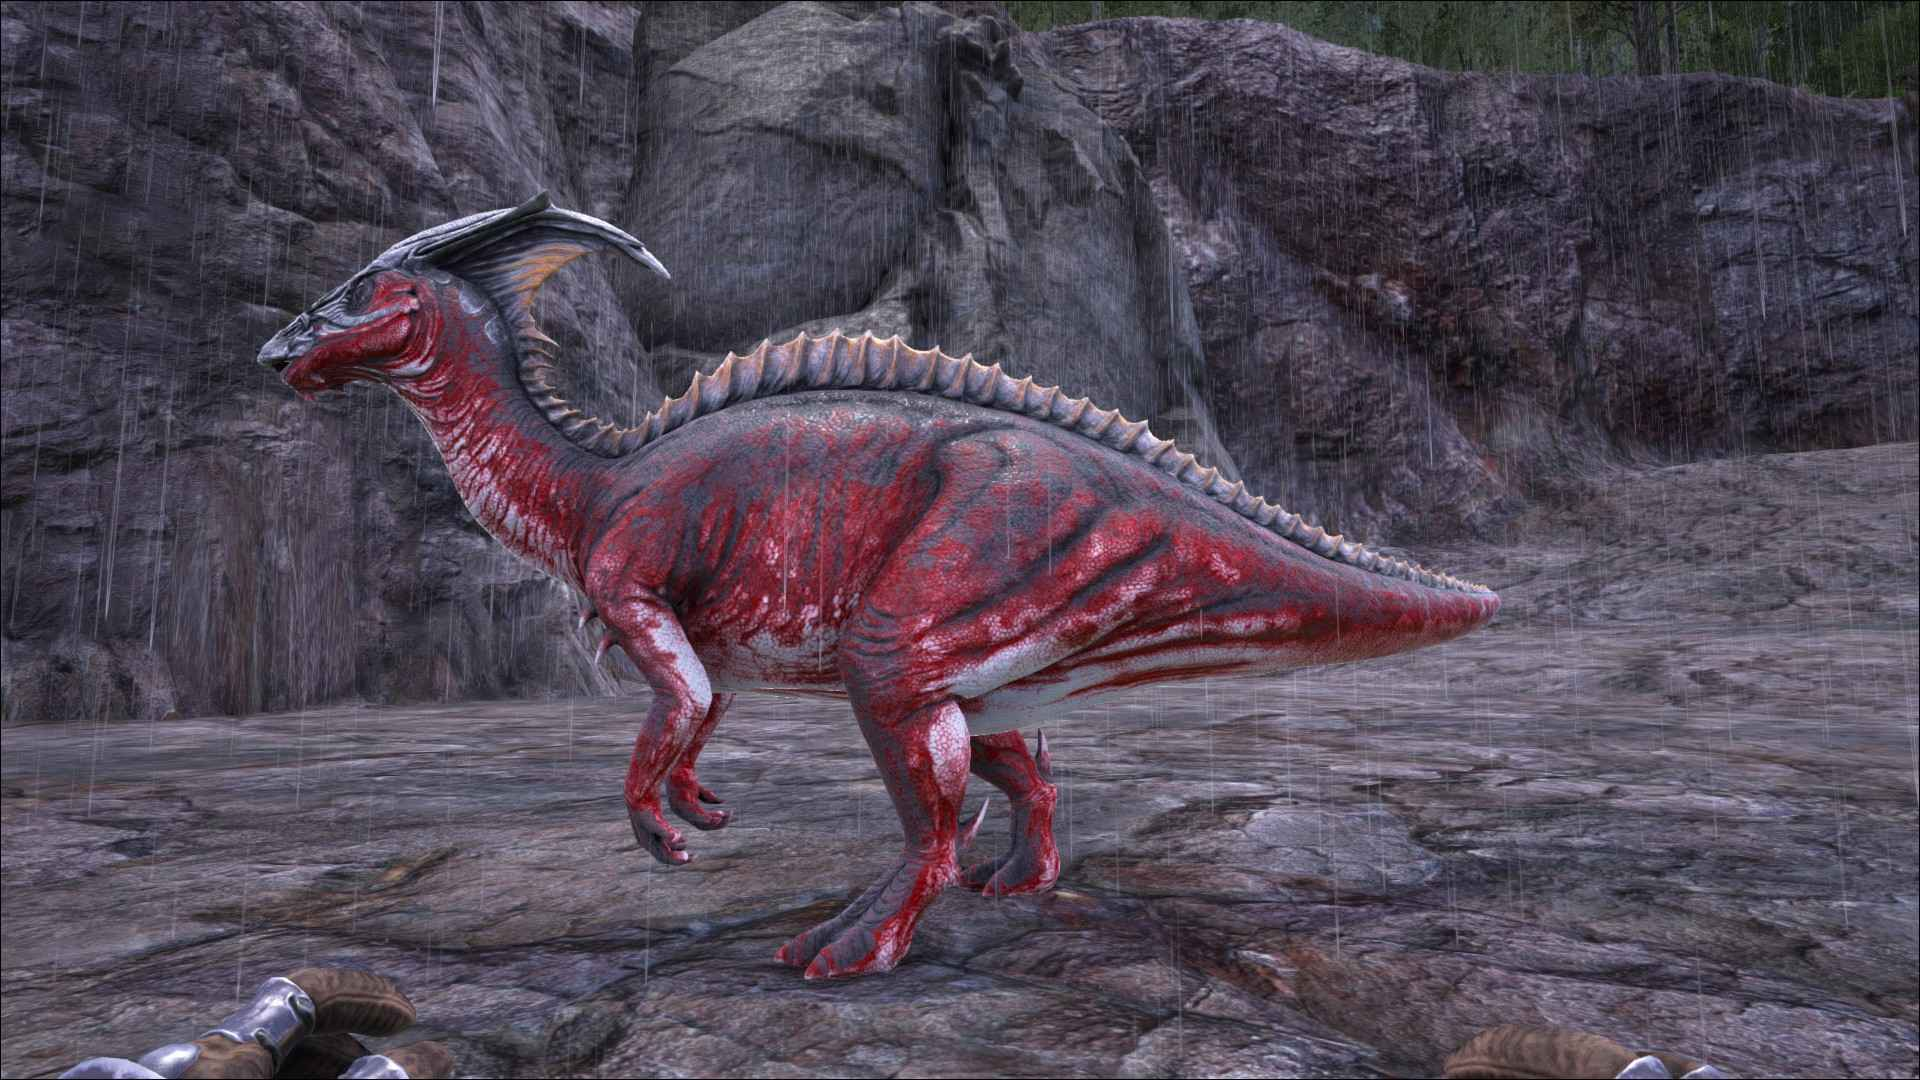 Ark Survival Evolved Dino Dossier Parasaur Taming Breeding Information includes spawn code, blueprint path, gfi code, creature id, and ark guide. ark survival evolved dino dossier